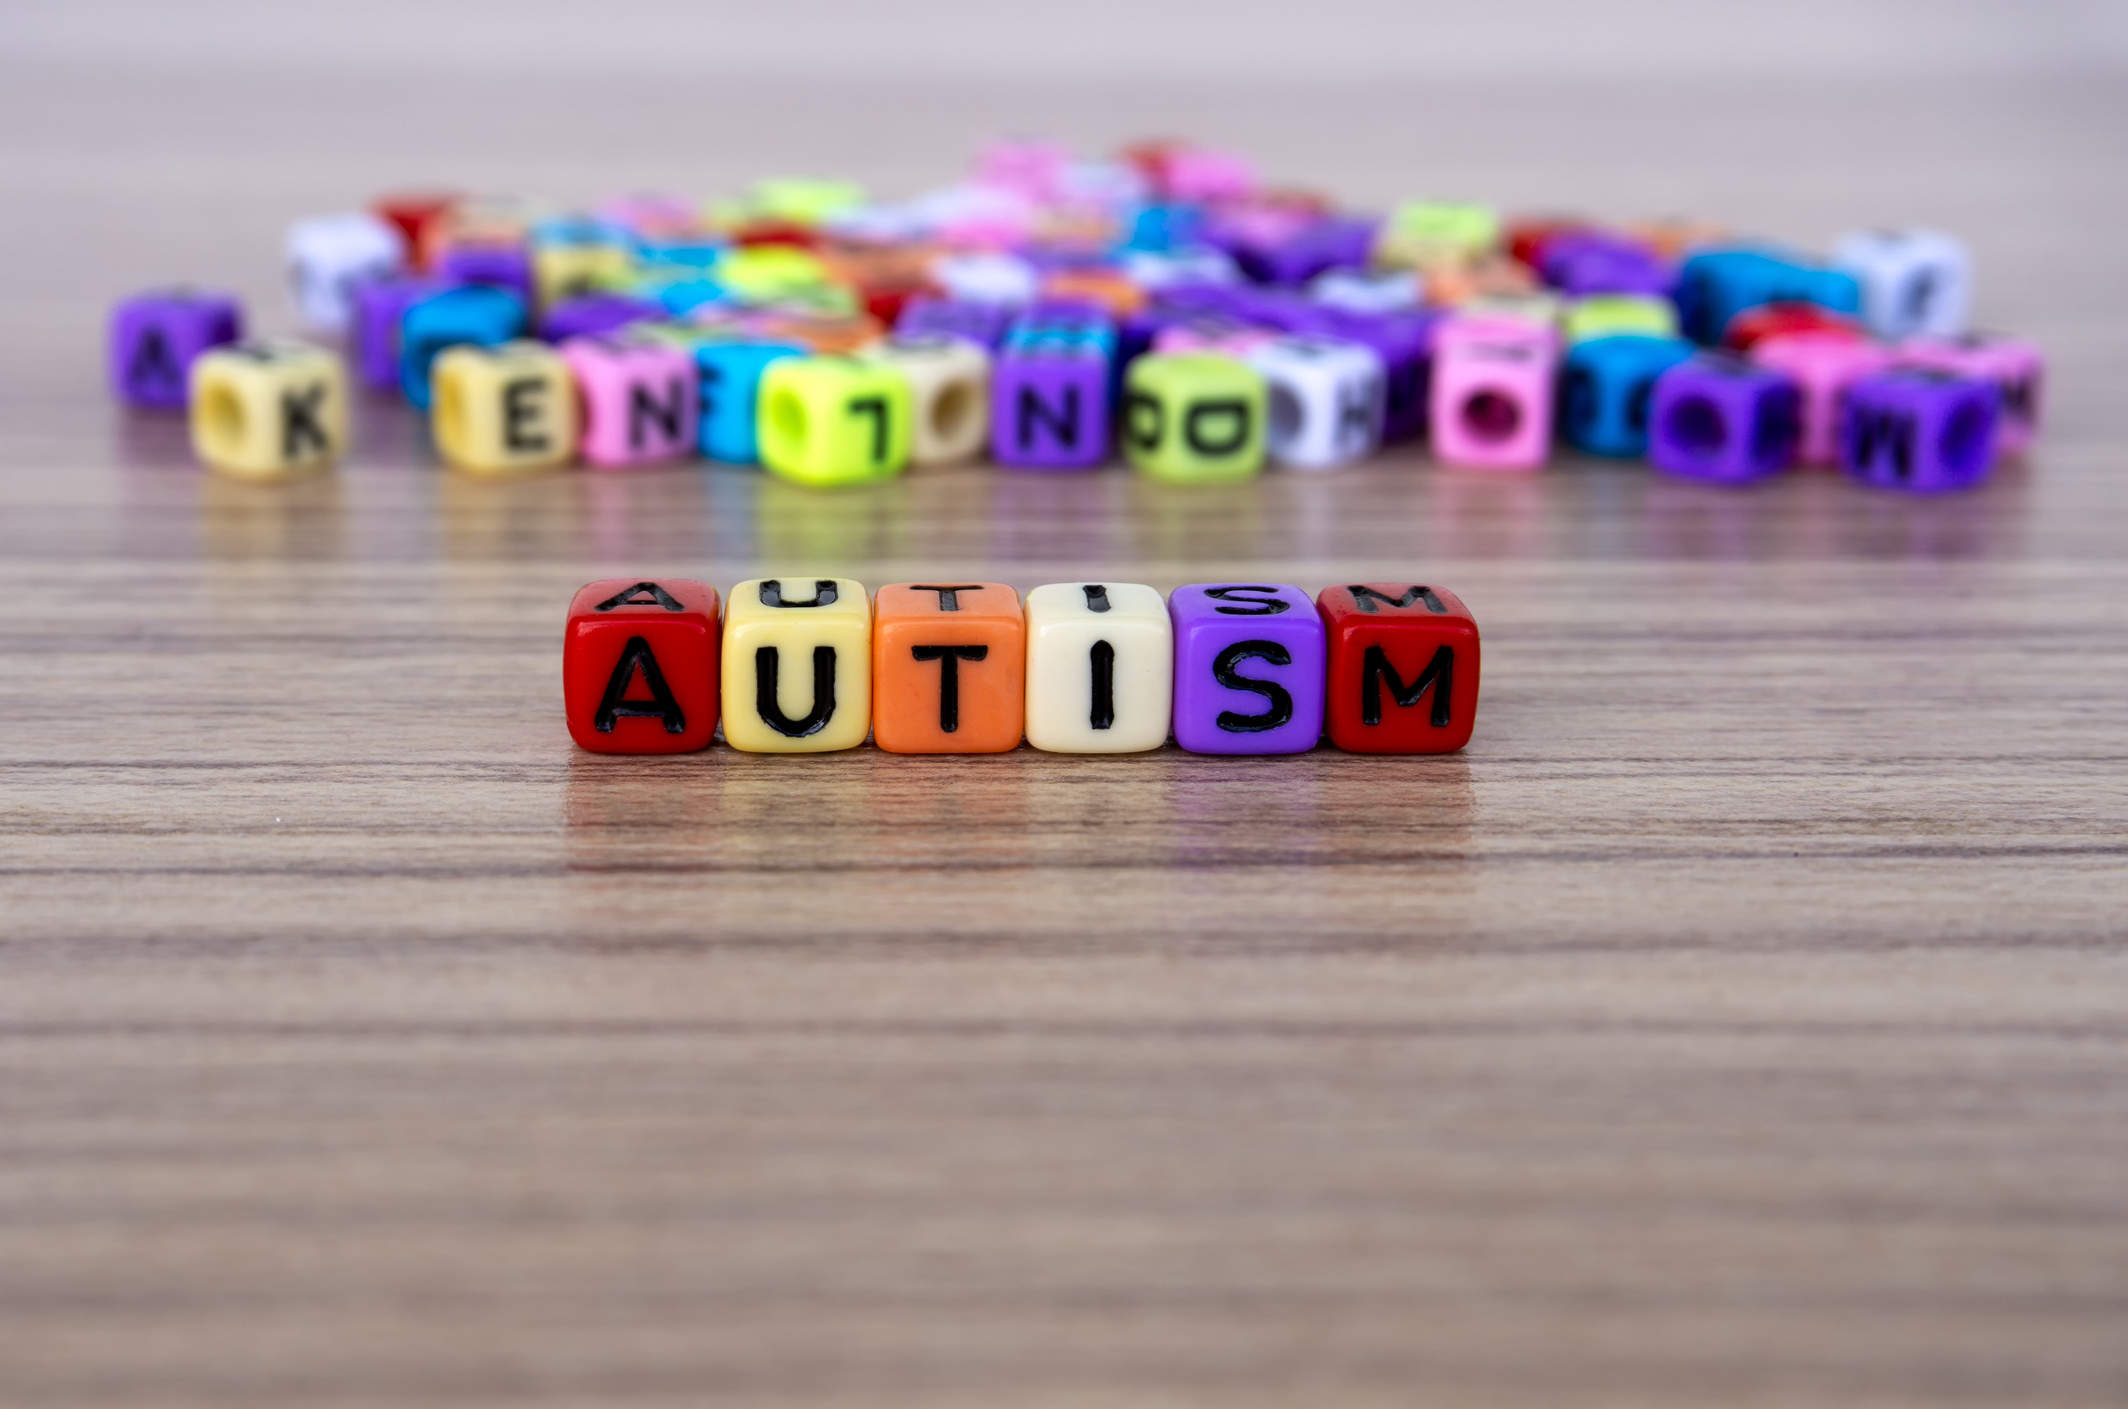 Guest blog 6 - My Diagnosis of Autism.